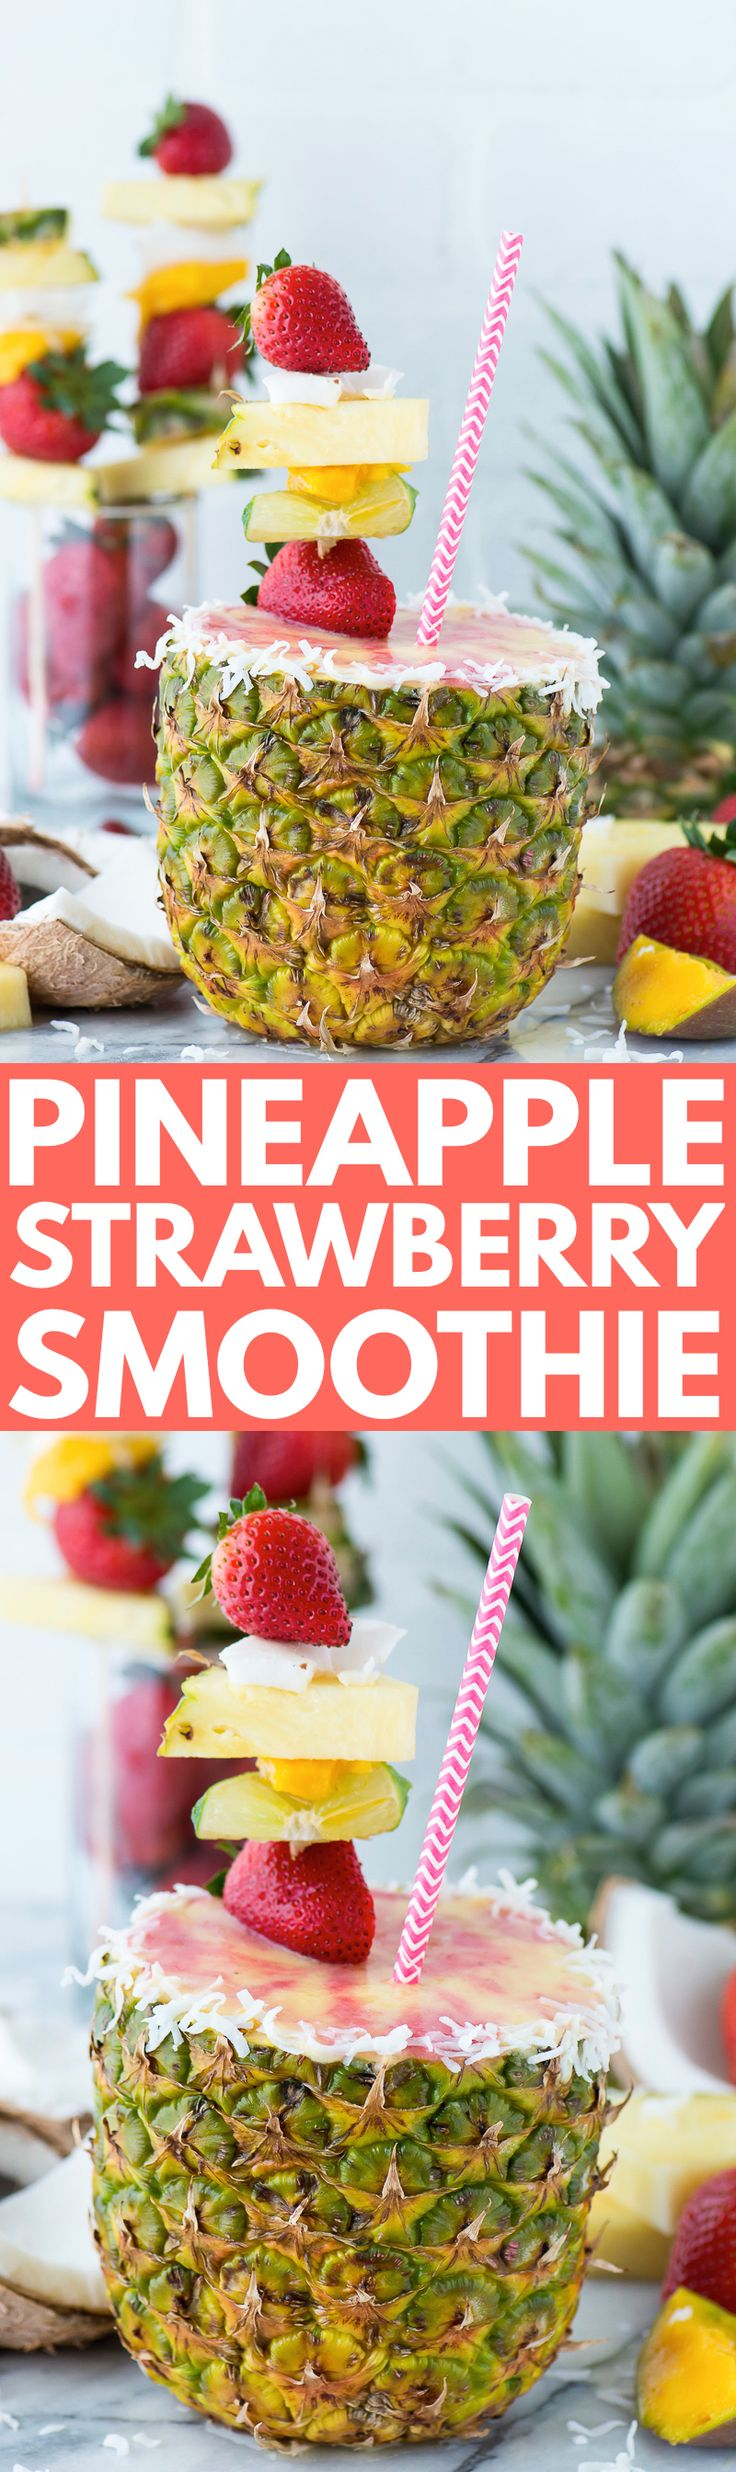 Pineapple Strawberry Smoothie in a Pineapple Cup | Recipe | Smoothie ...